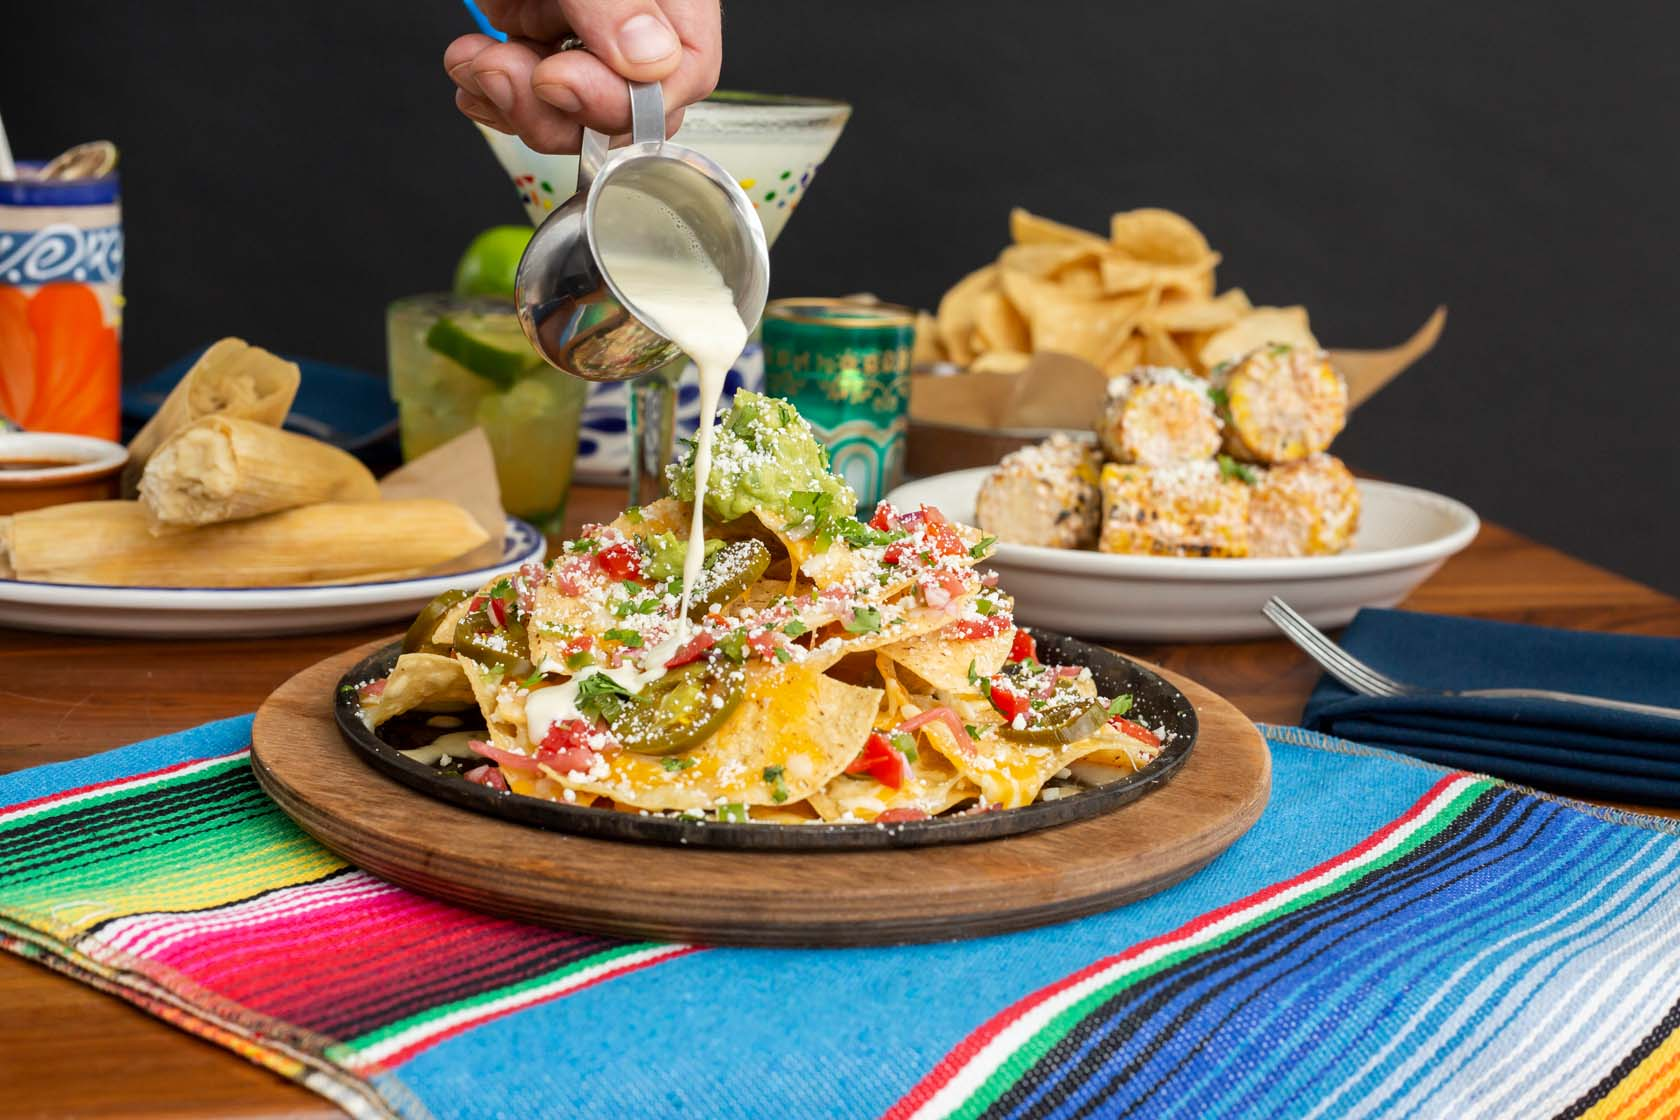 Small metal pitcher of queso sauce being drizzled over plate of nachos.